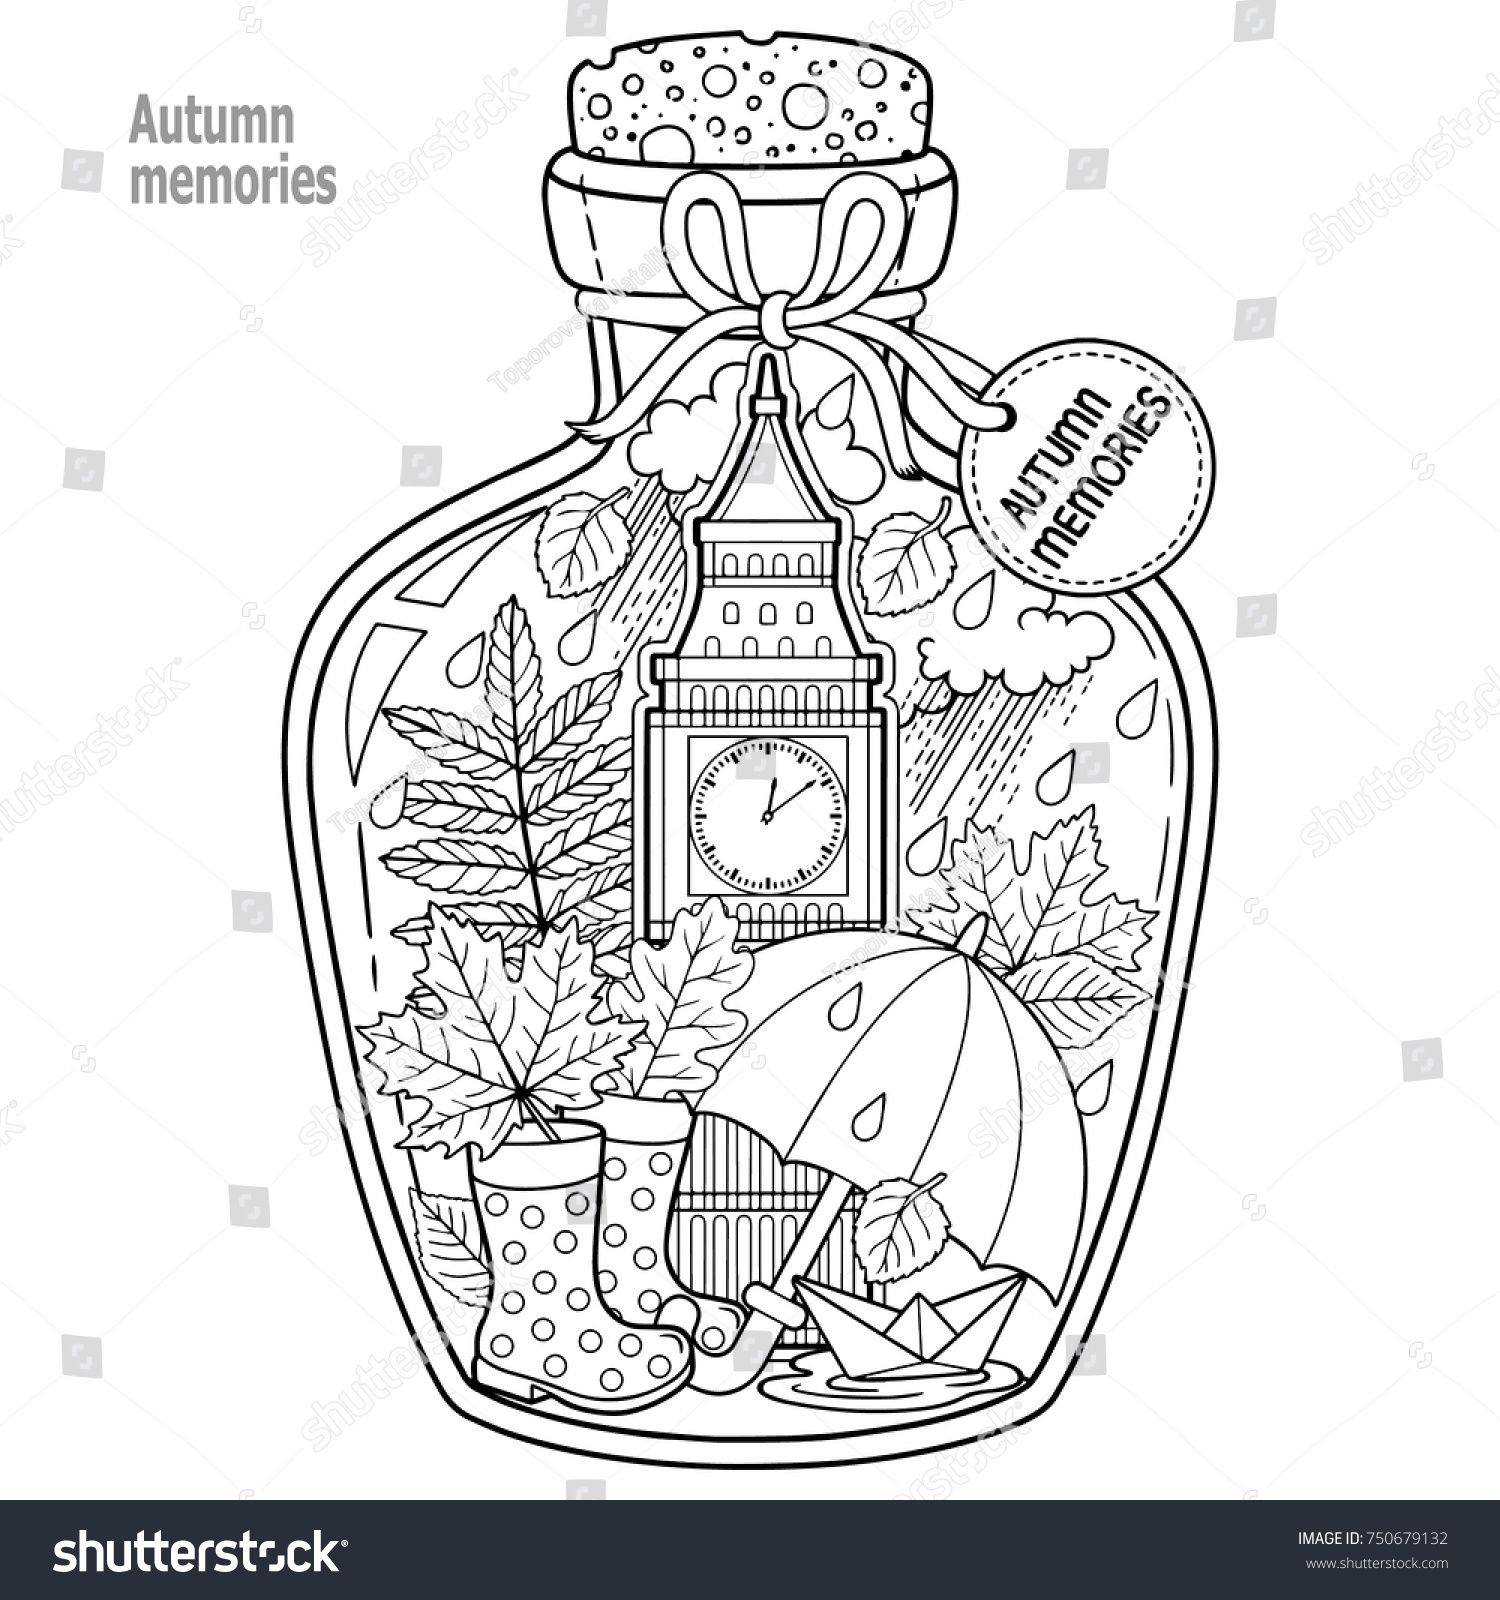 Coloring book for adults. A glass vessel with autumn memories of dreams about a trip to London. A bottle with rain, boots, leaves, a cup of tea, big ben tower london, Victoria Tower, #coloringpagestoprint